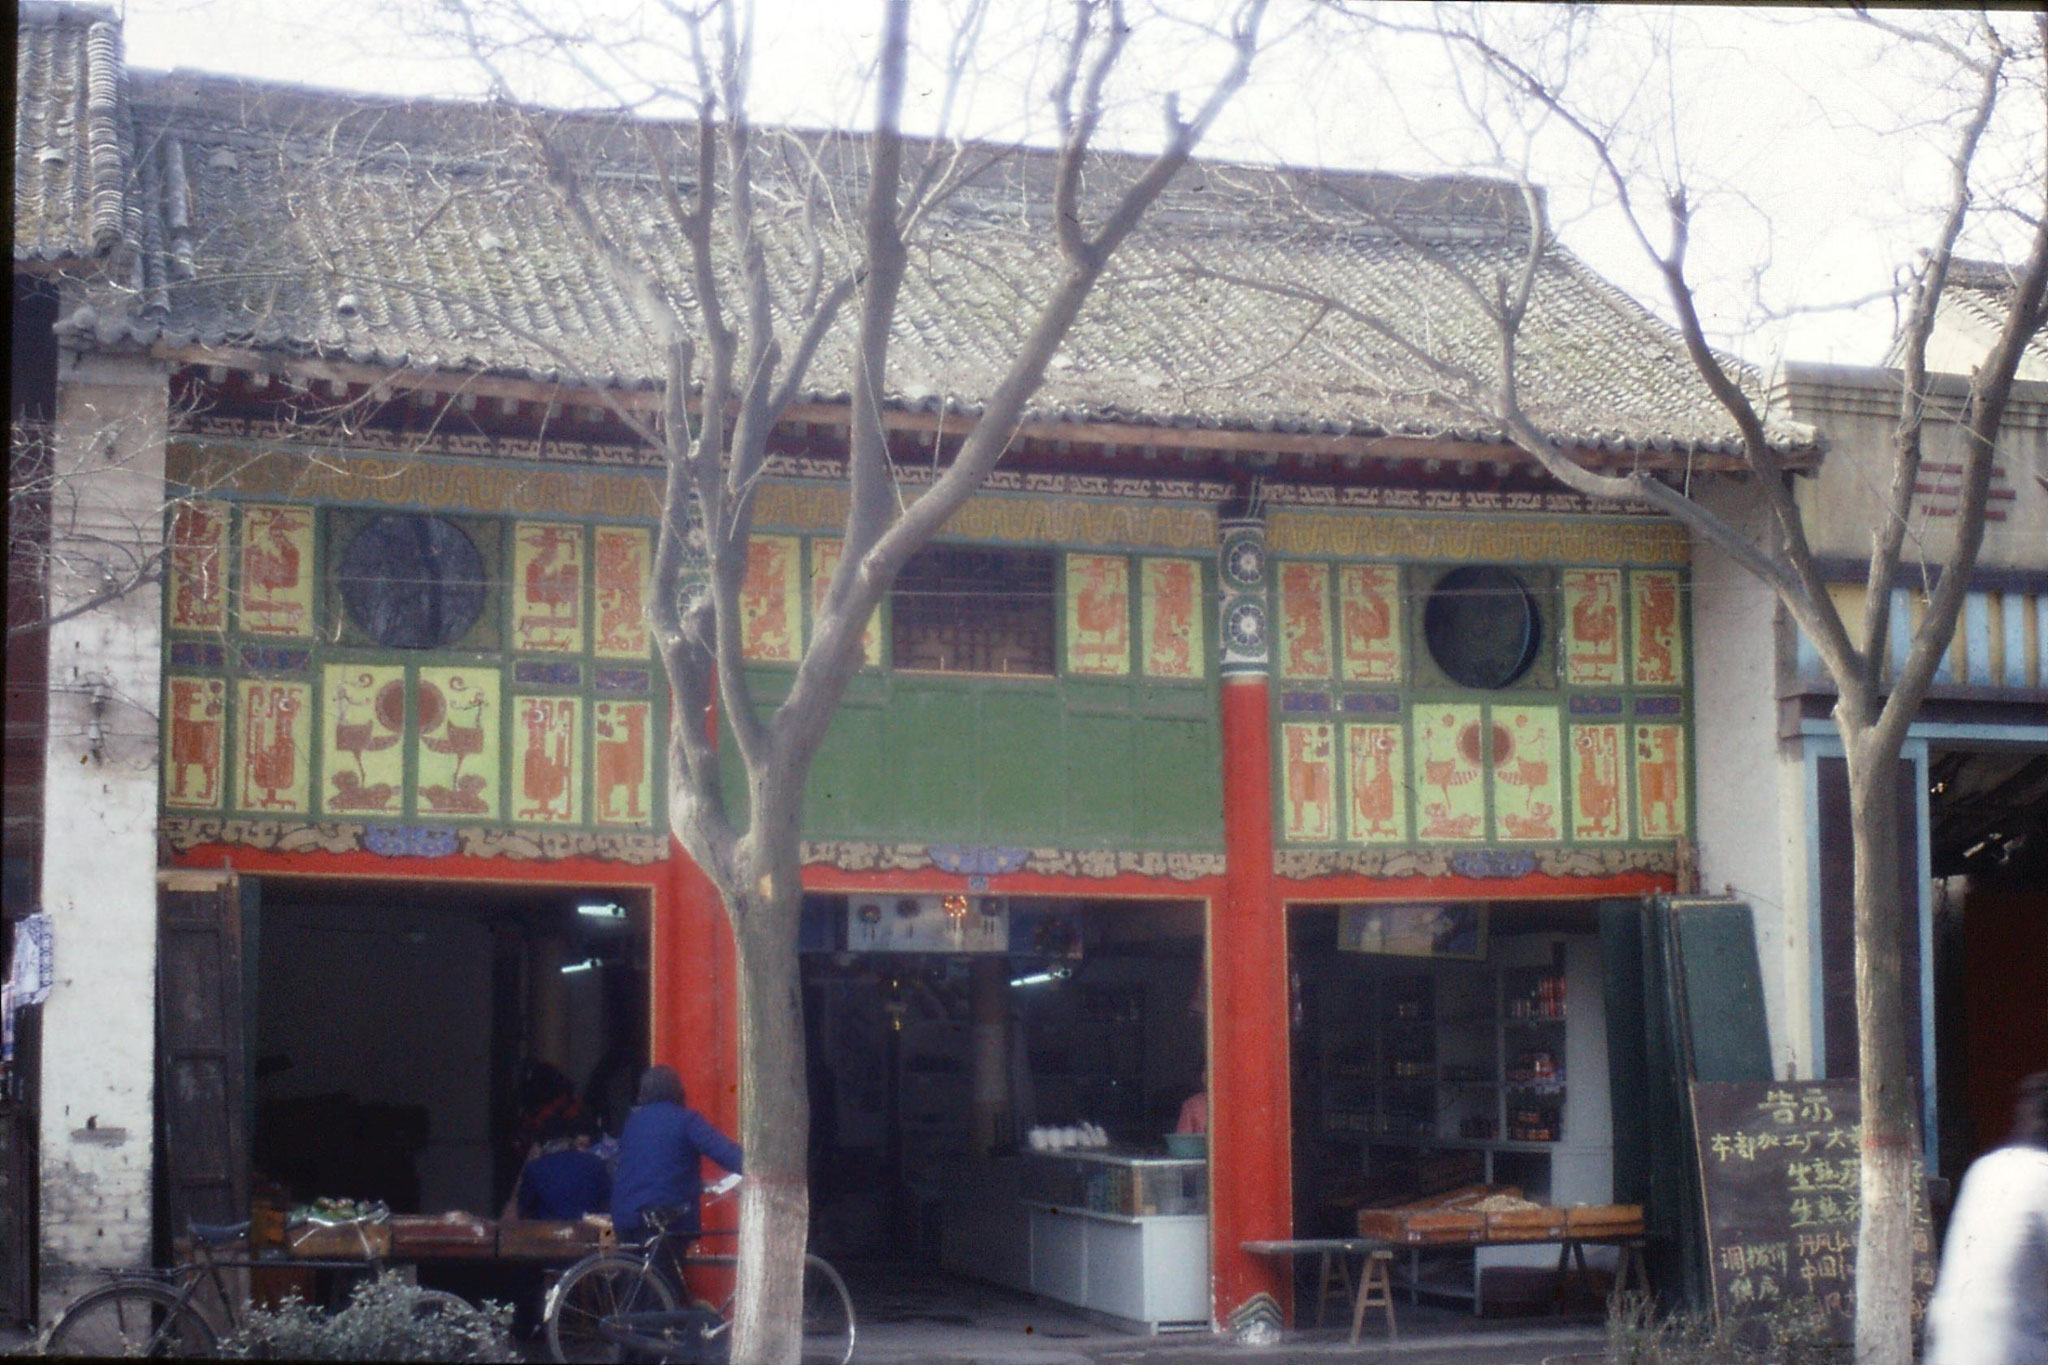 7/3/1989: 28: old biuilding in Xian